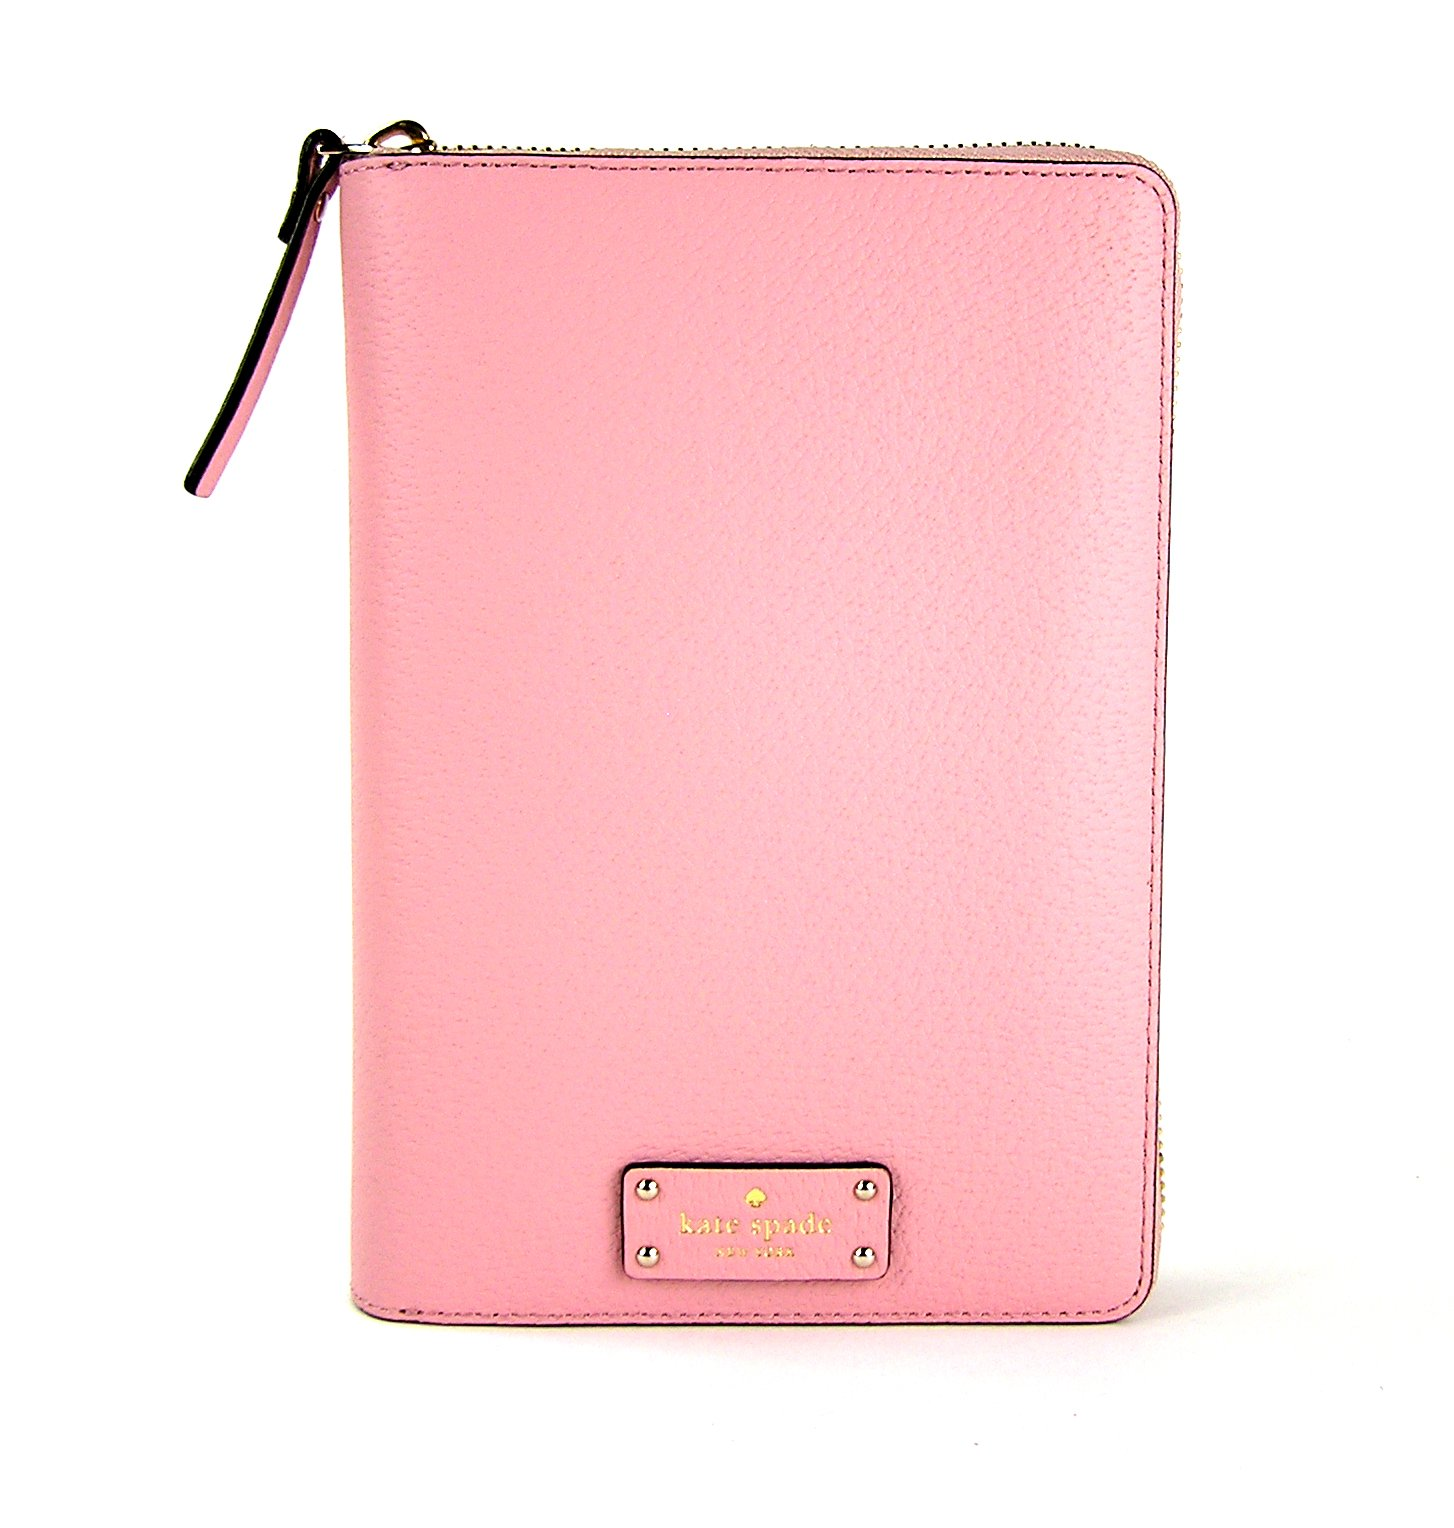 Kate Spade Zip Around Personal Organizer Grove Street Pink Bonnet by Kate Spade New York (Image #1)